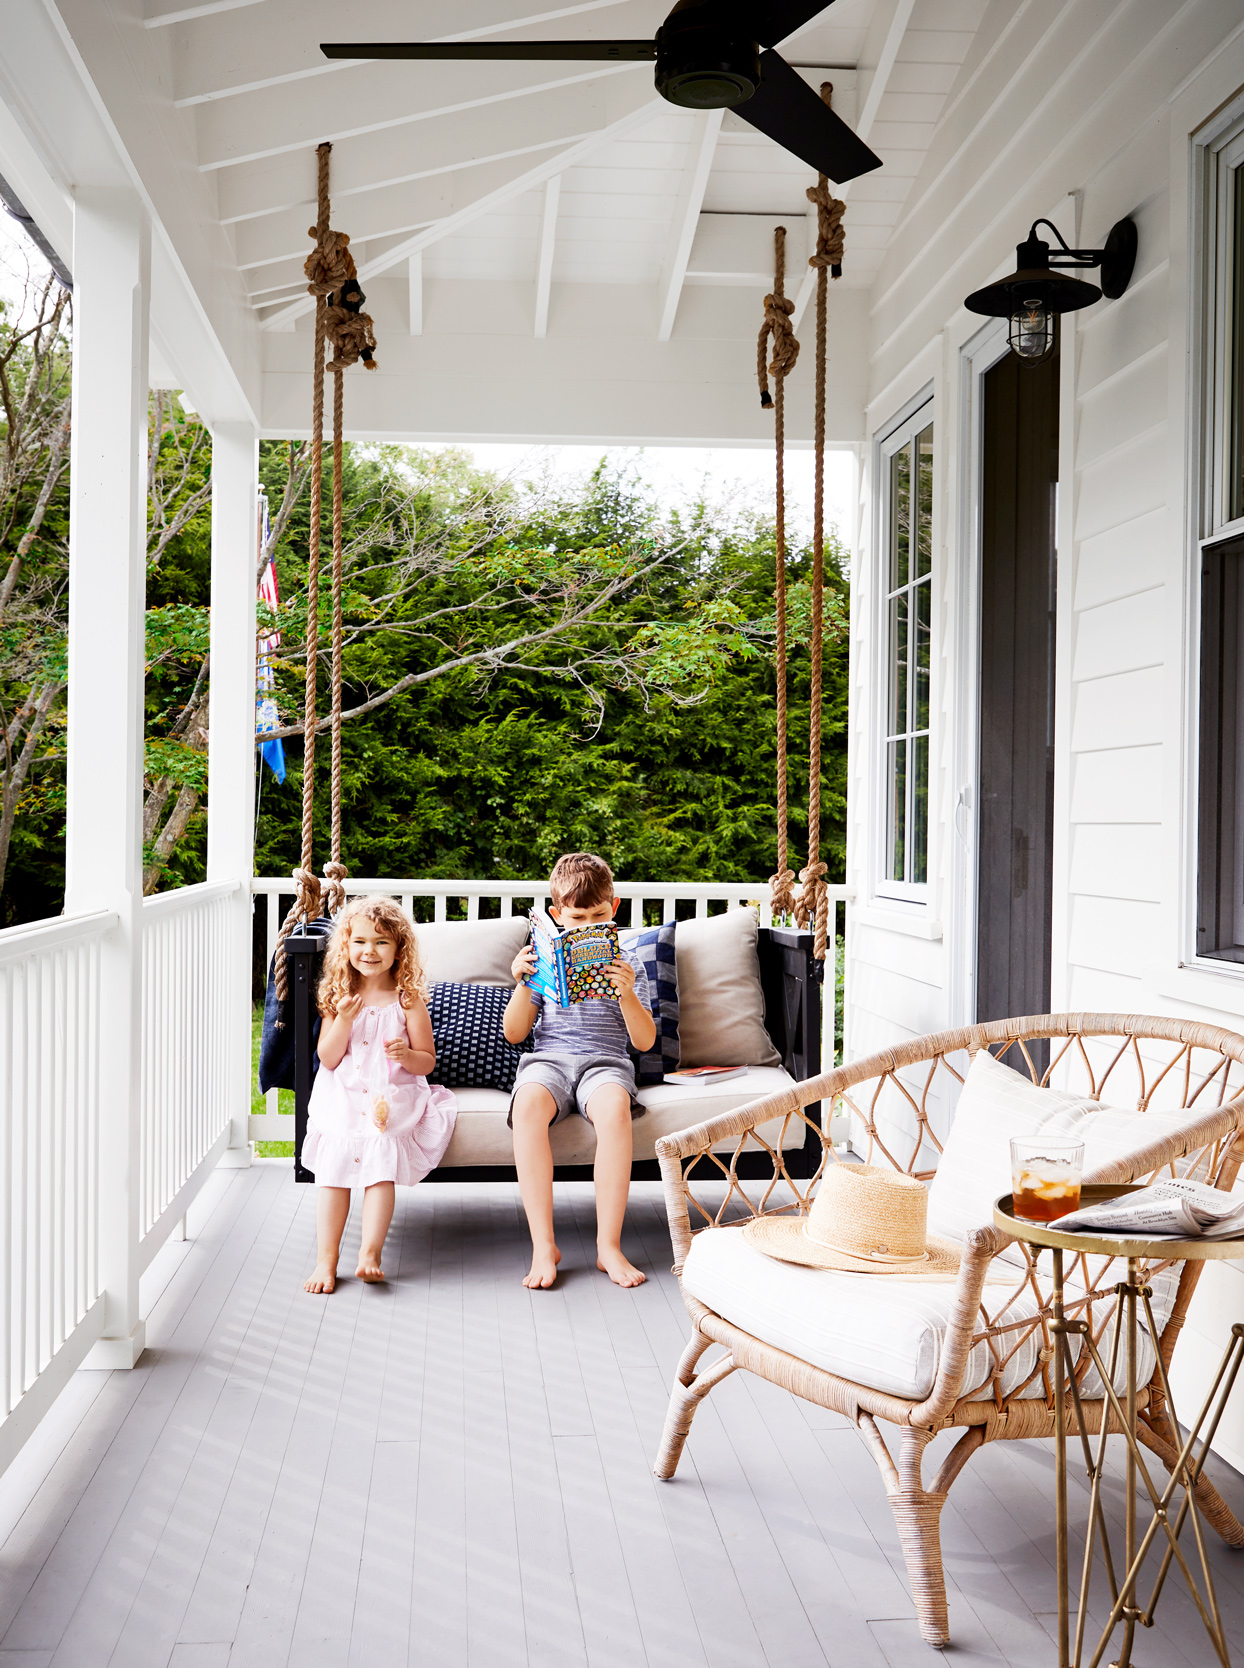 children sitting on front porch swing bed